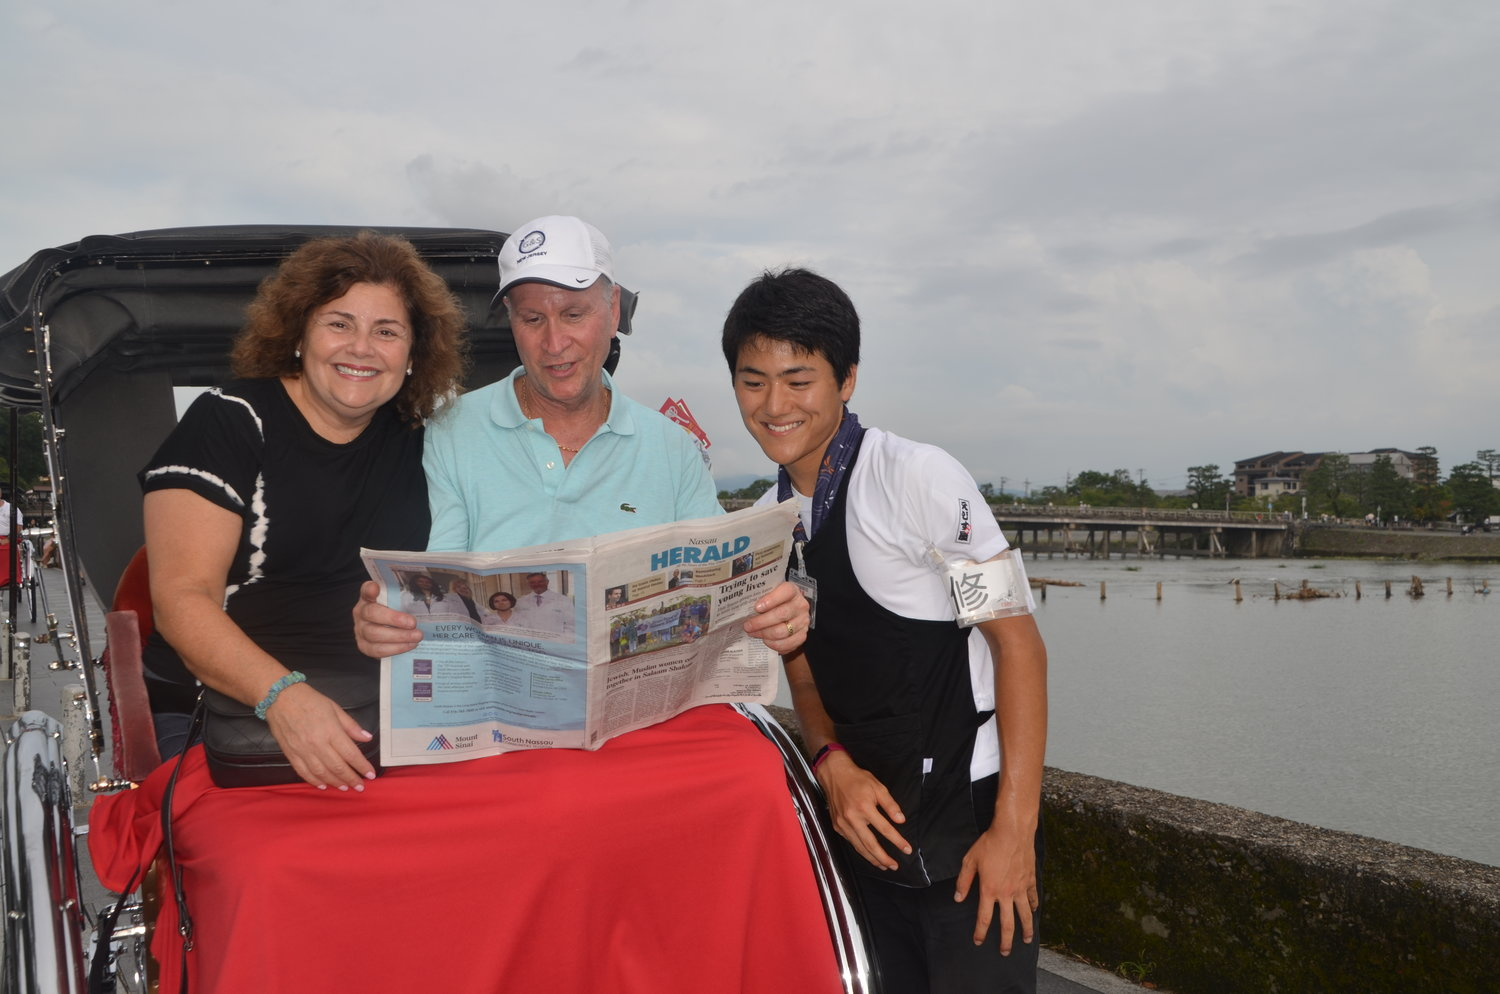 From Lawrence to Kyoto, Japan, Malky and Jay Spector took a rickshaw ride with the Nassau Herald.